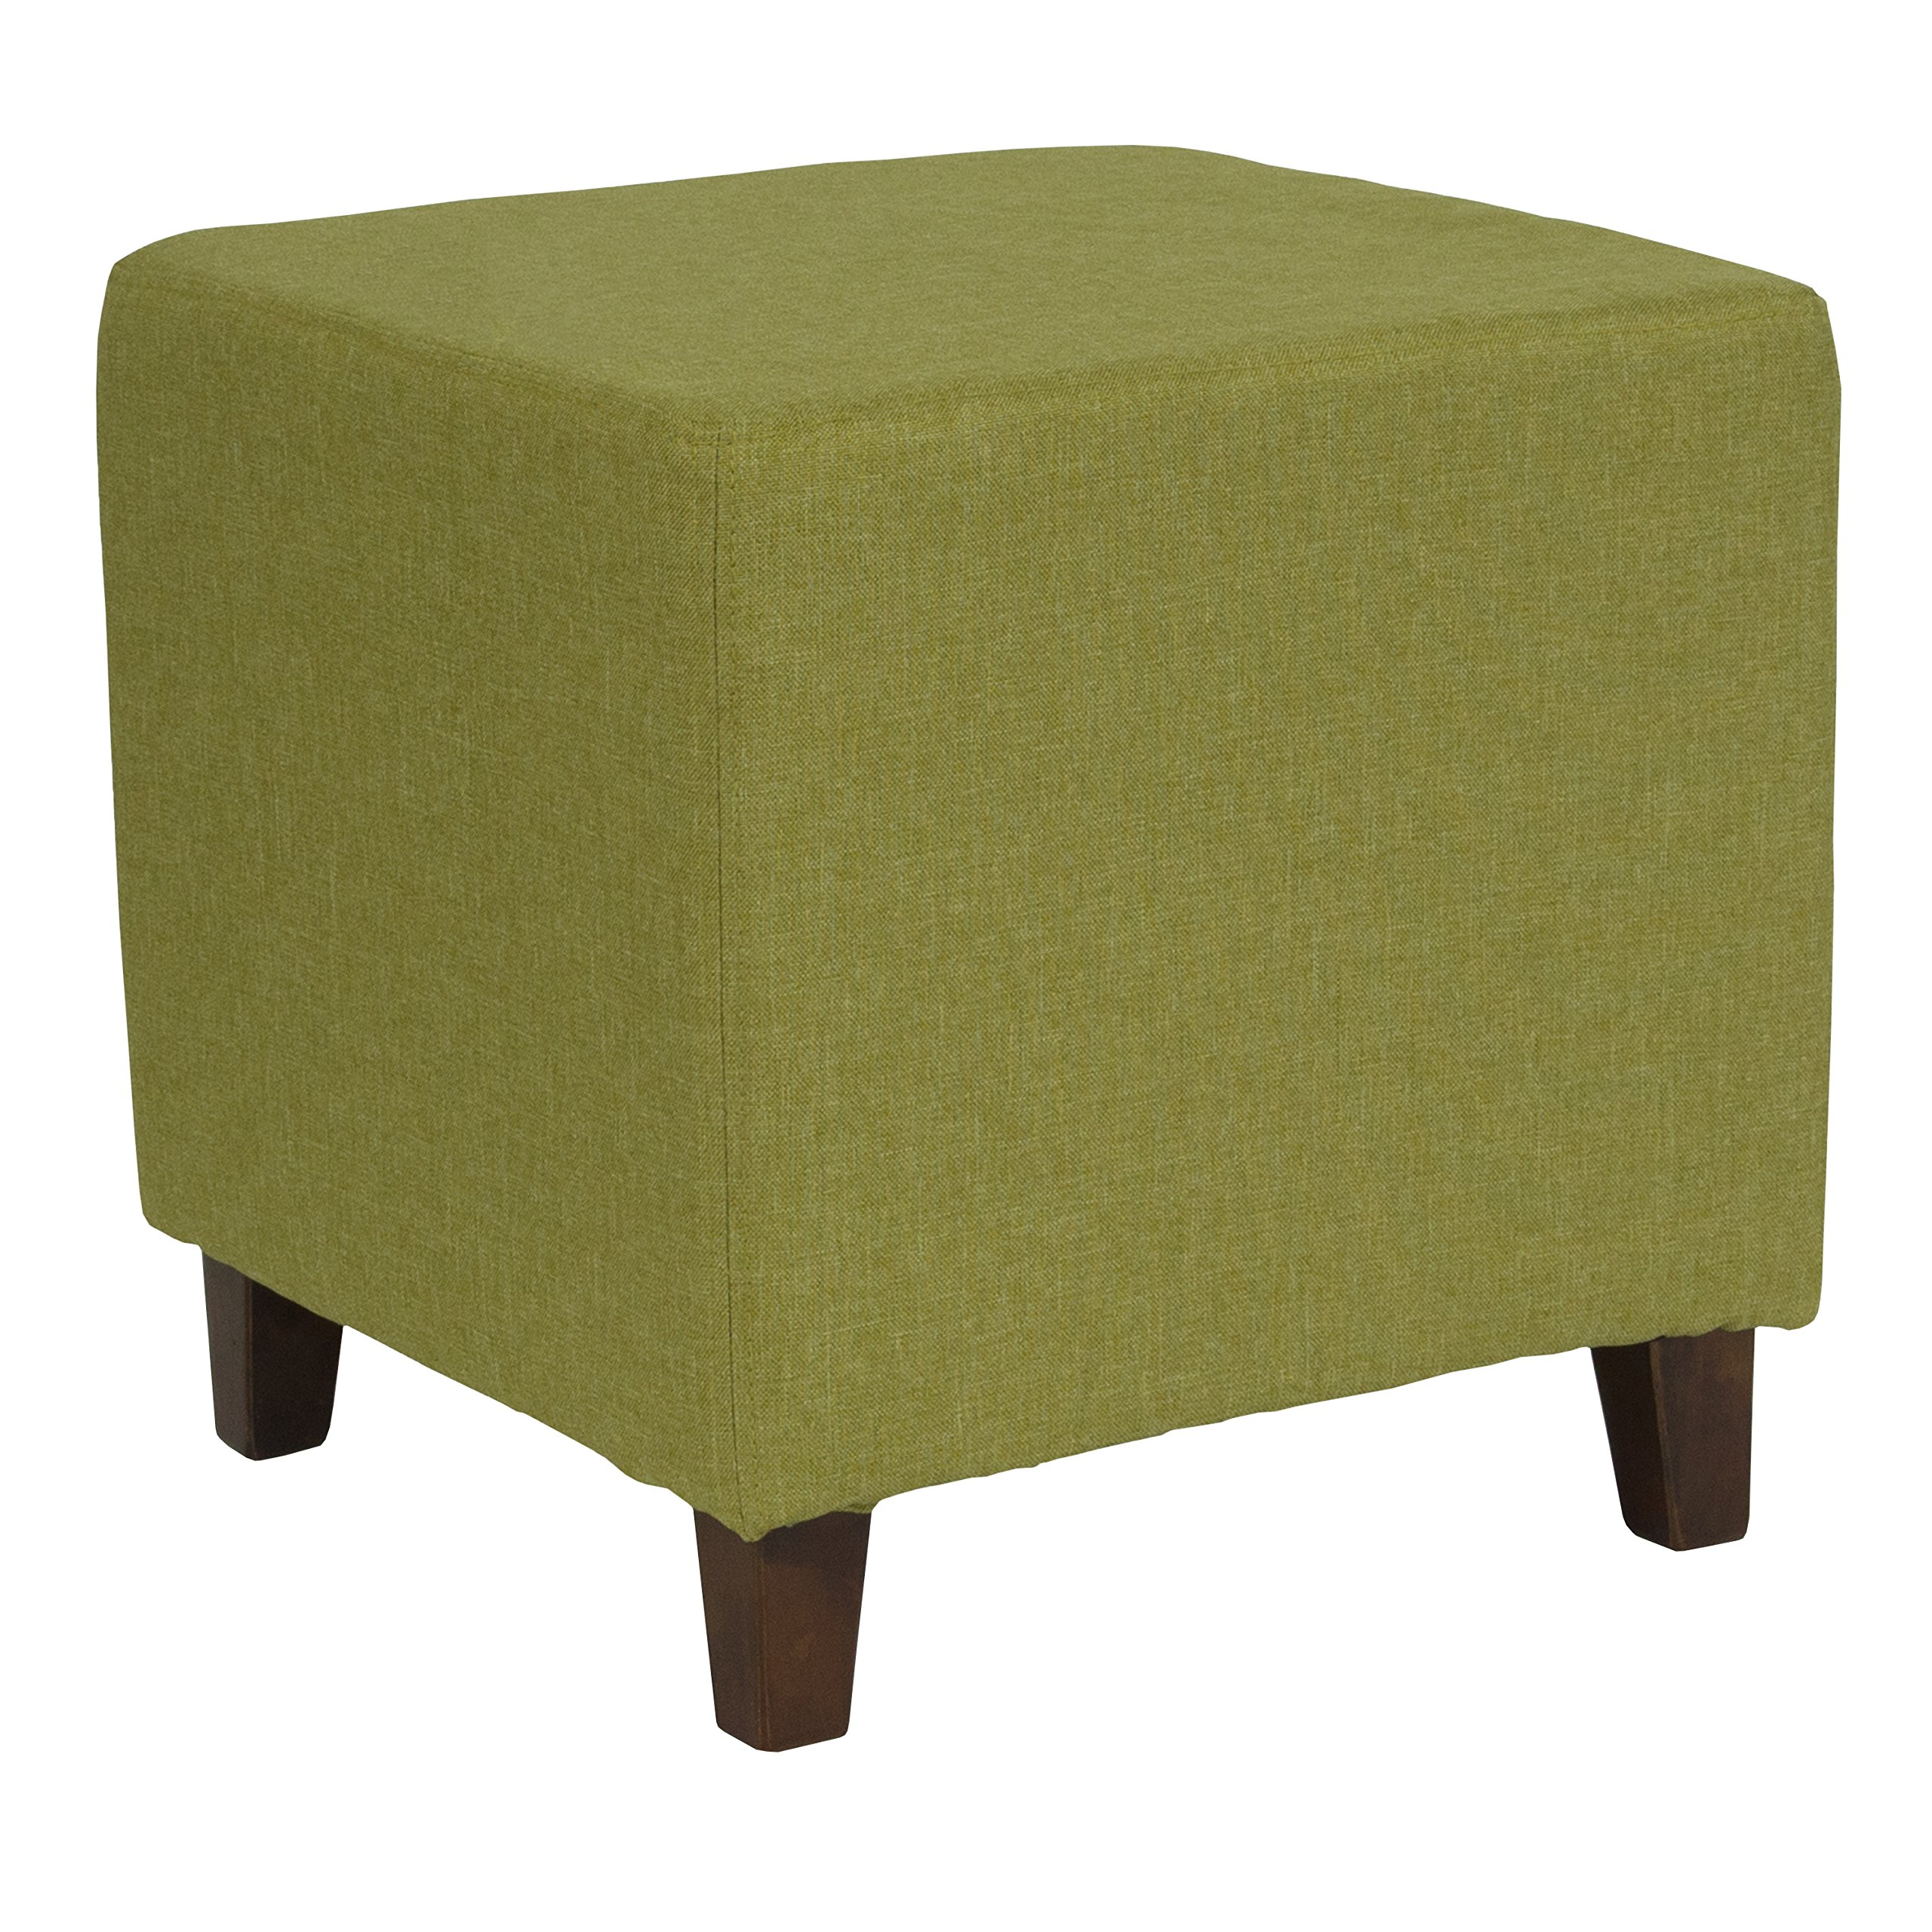 Flash Furniture Ascalon Upholstered Ottoman Pouf in Green Fabric by Flash Furniture